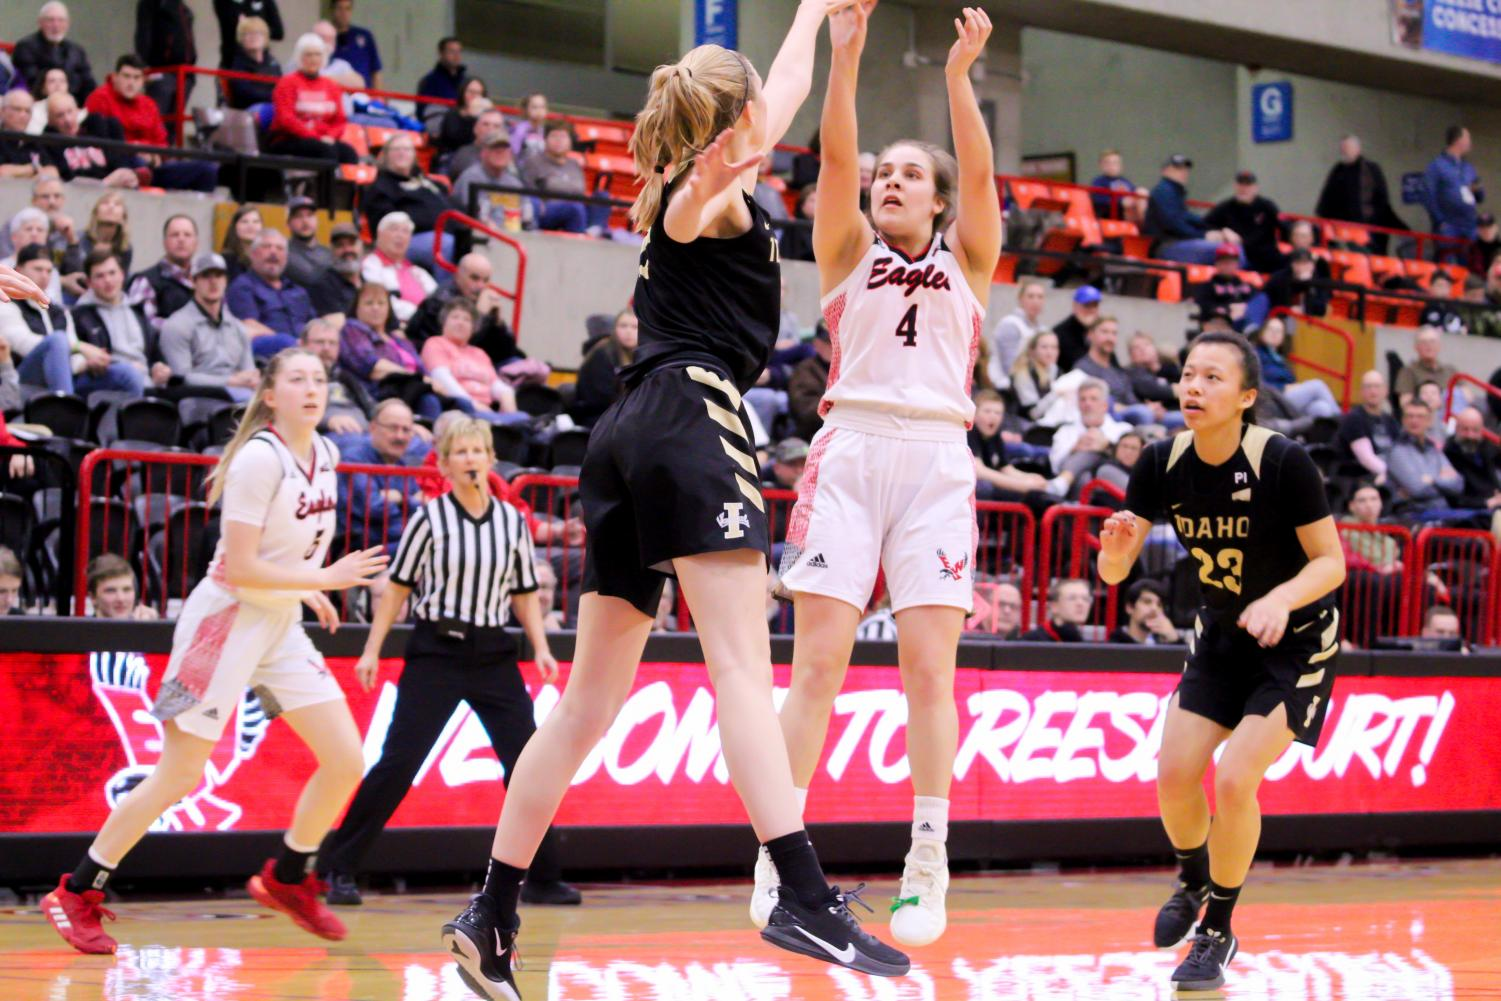 EWU falls to Idaho for 12th straight defeat - The Easterner